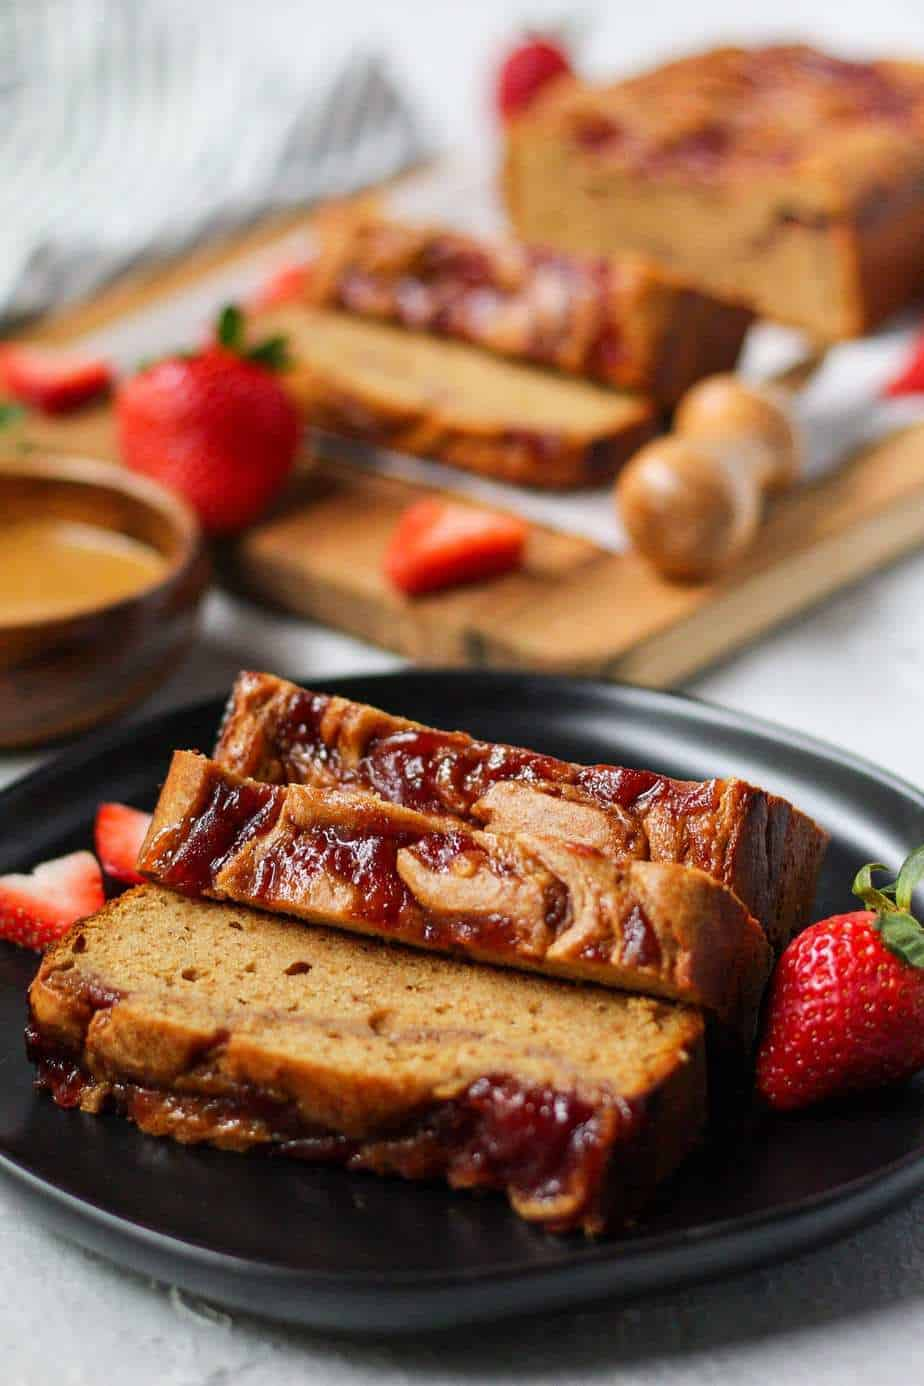 Peanut butter and jelly yogurt loaf cake on black plate with more cake on cutting board in background. cake has a strawberry jam swirl on top and is sliced to show texture.